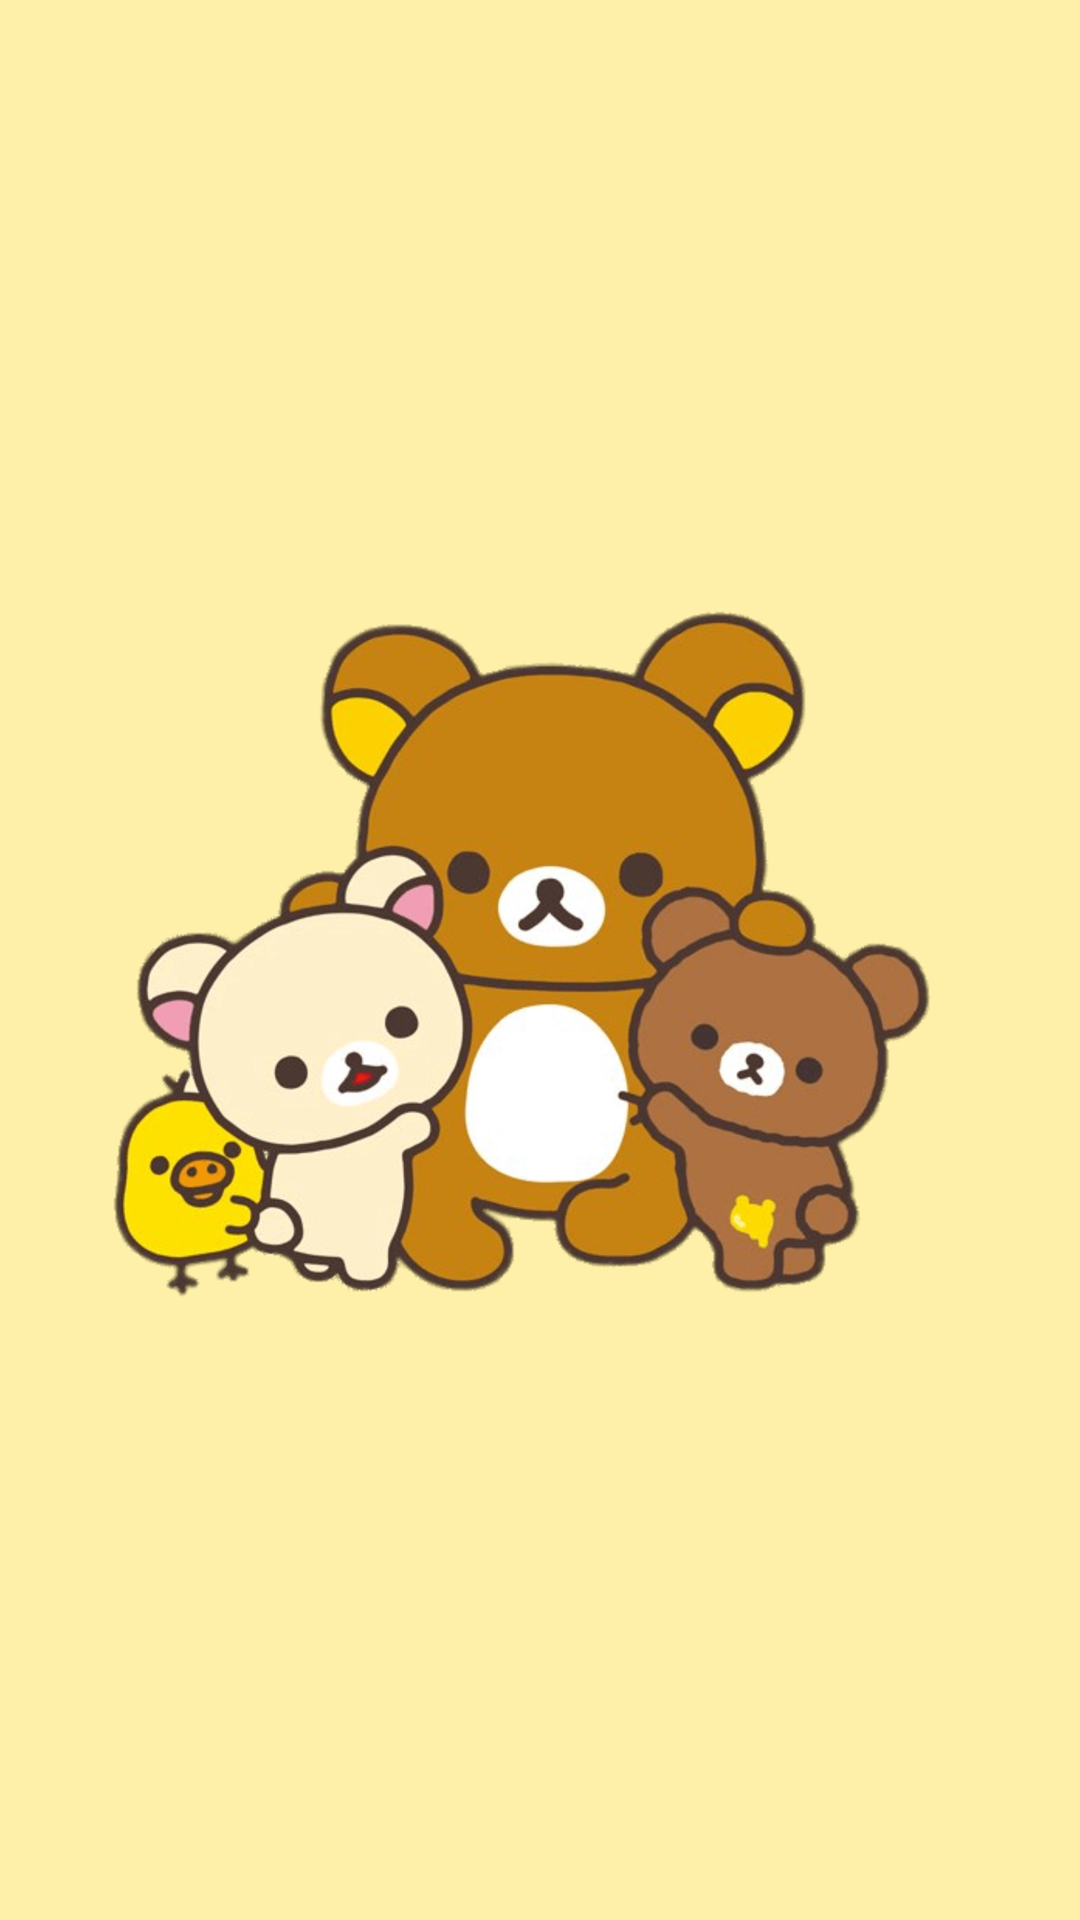 Rilakkuma Iphone Wallpaper Rilakuma wallpapers Rilakkuma 1080x1920